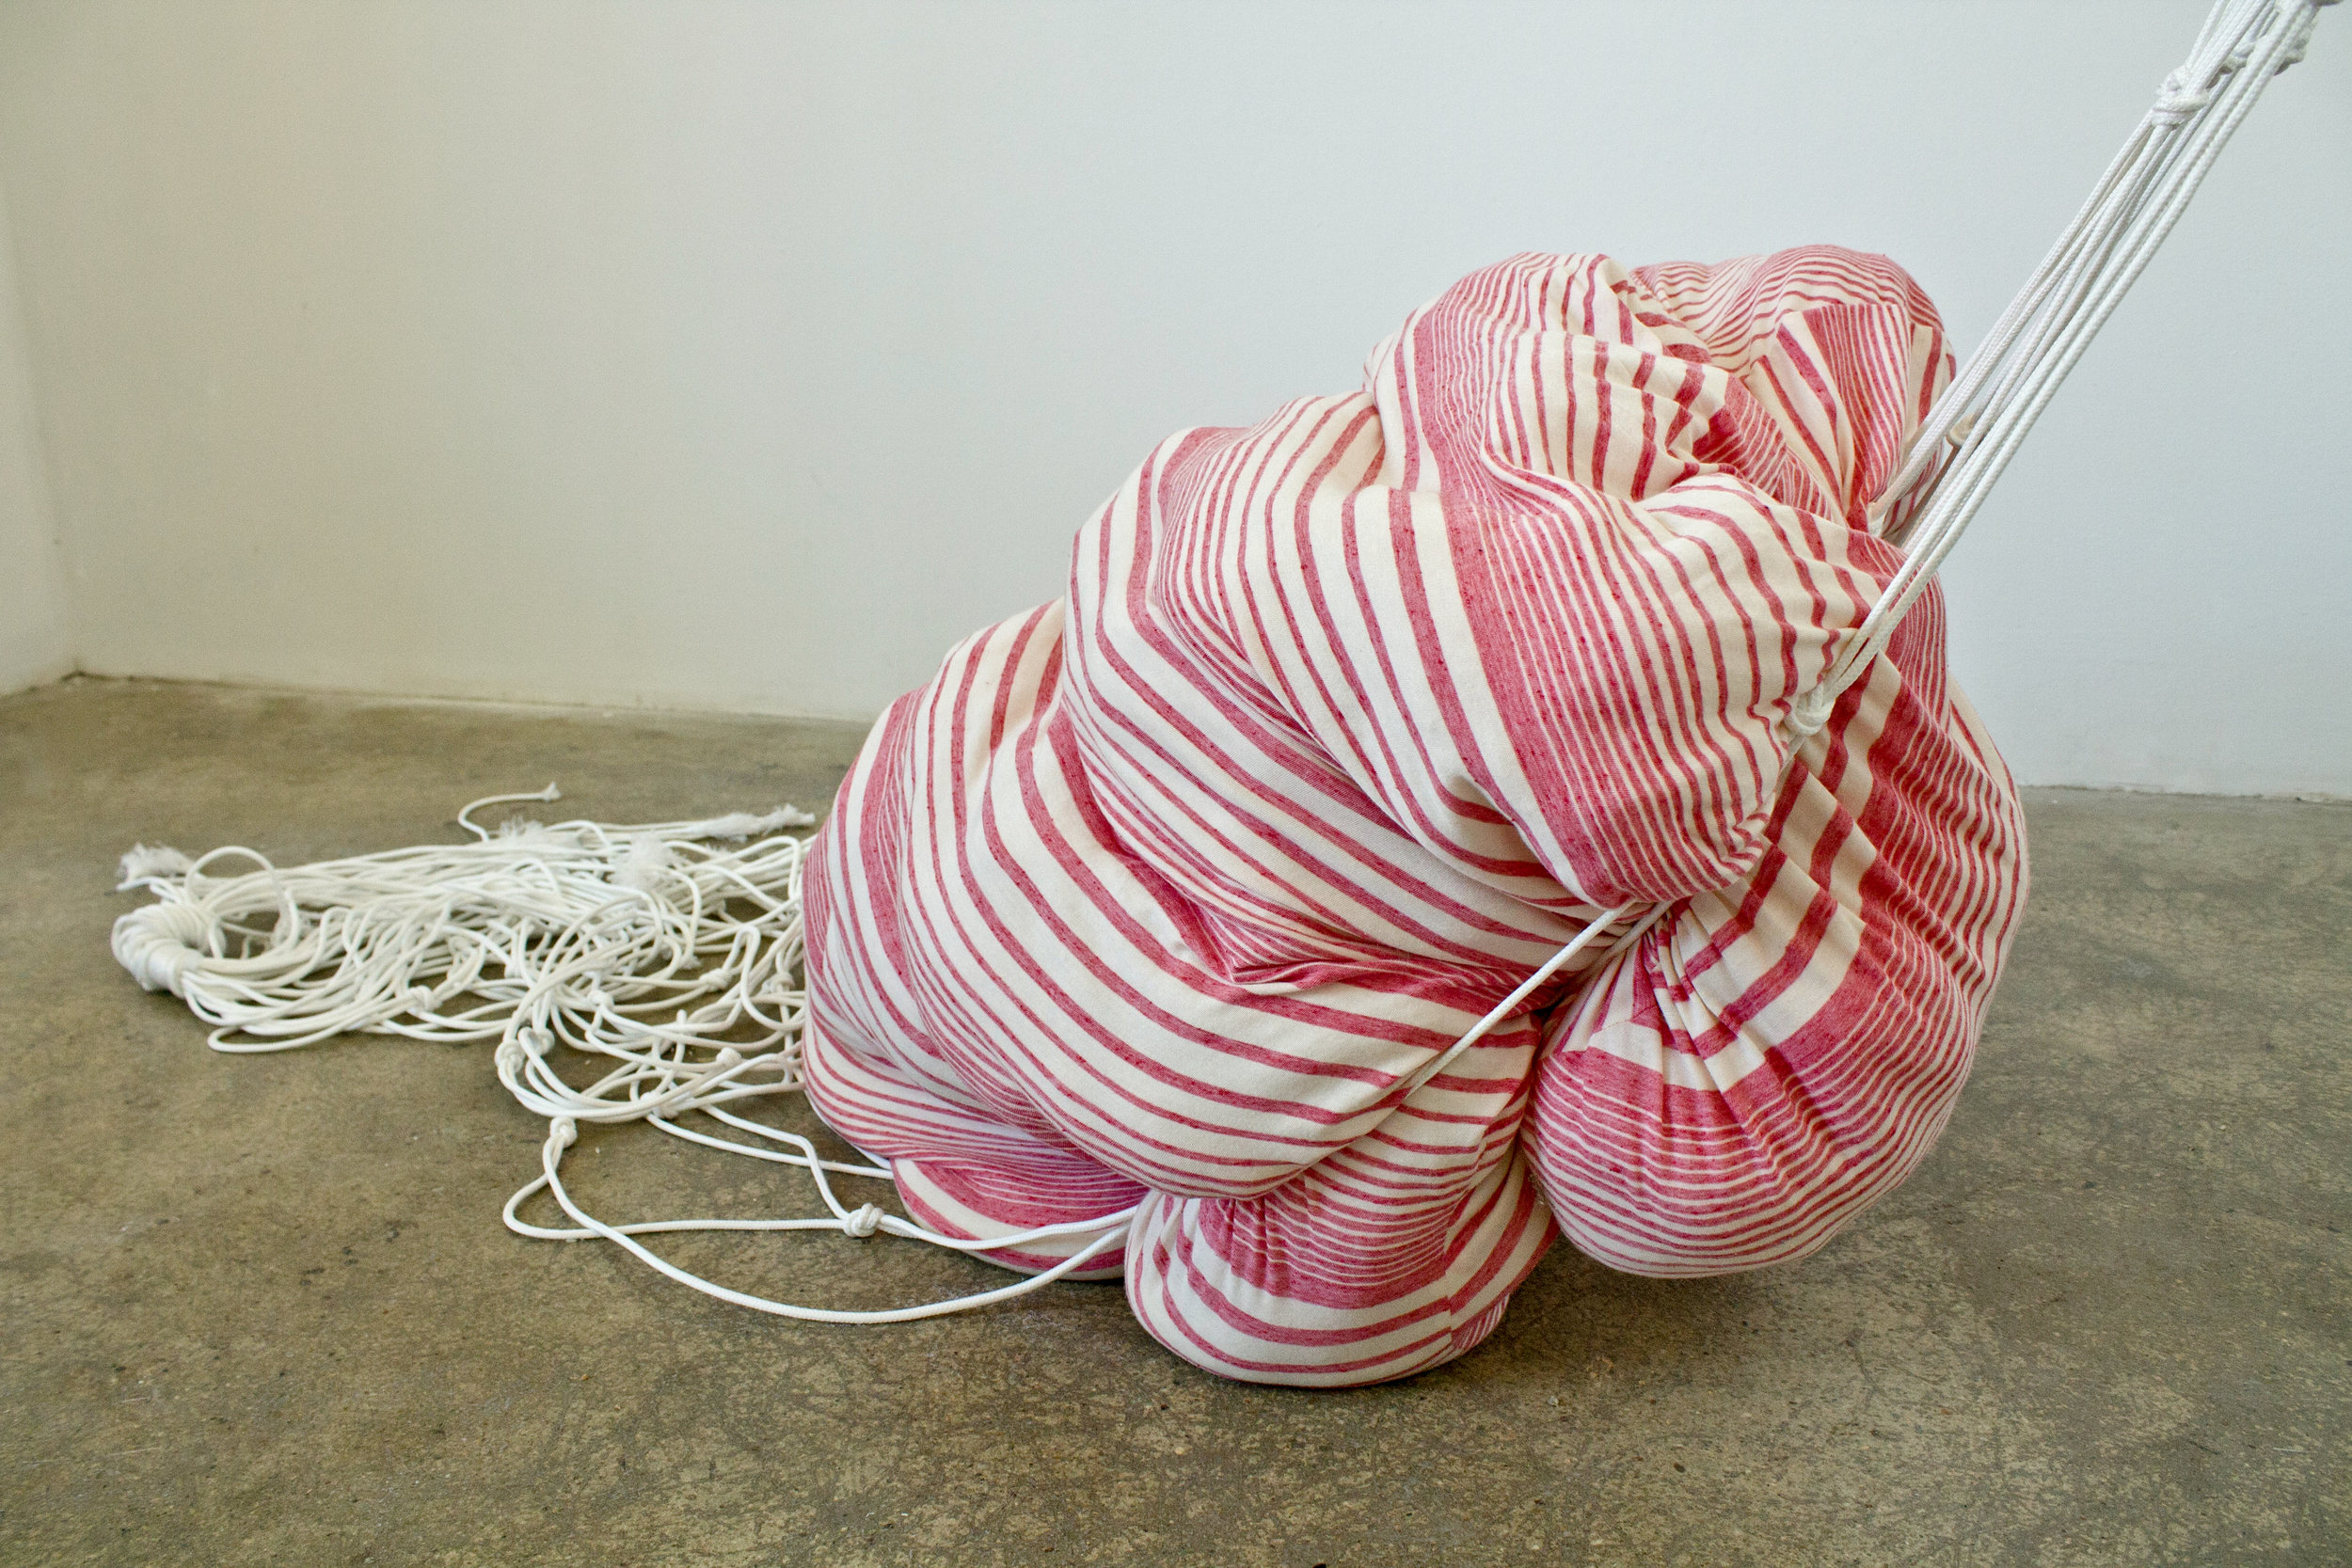 and everything nice Fabric, Knotted Rope Dimensions Variable 2015